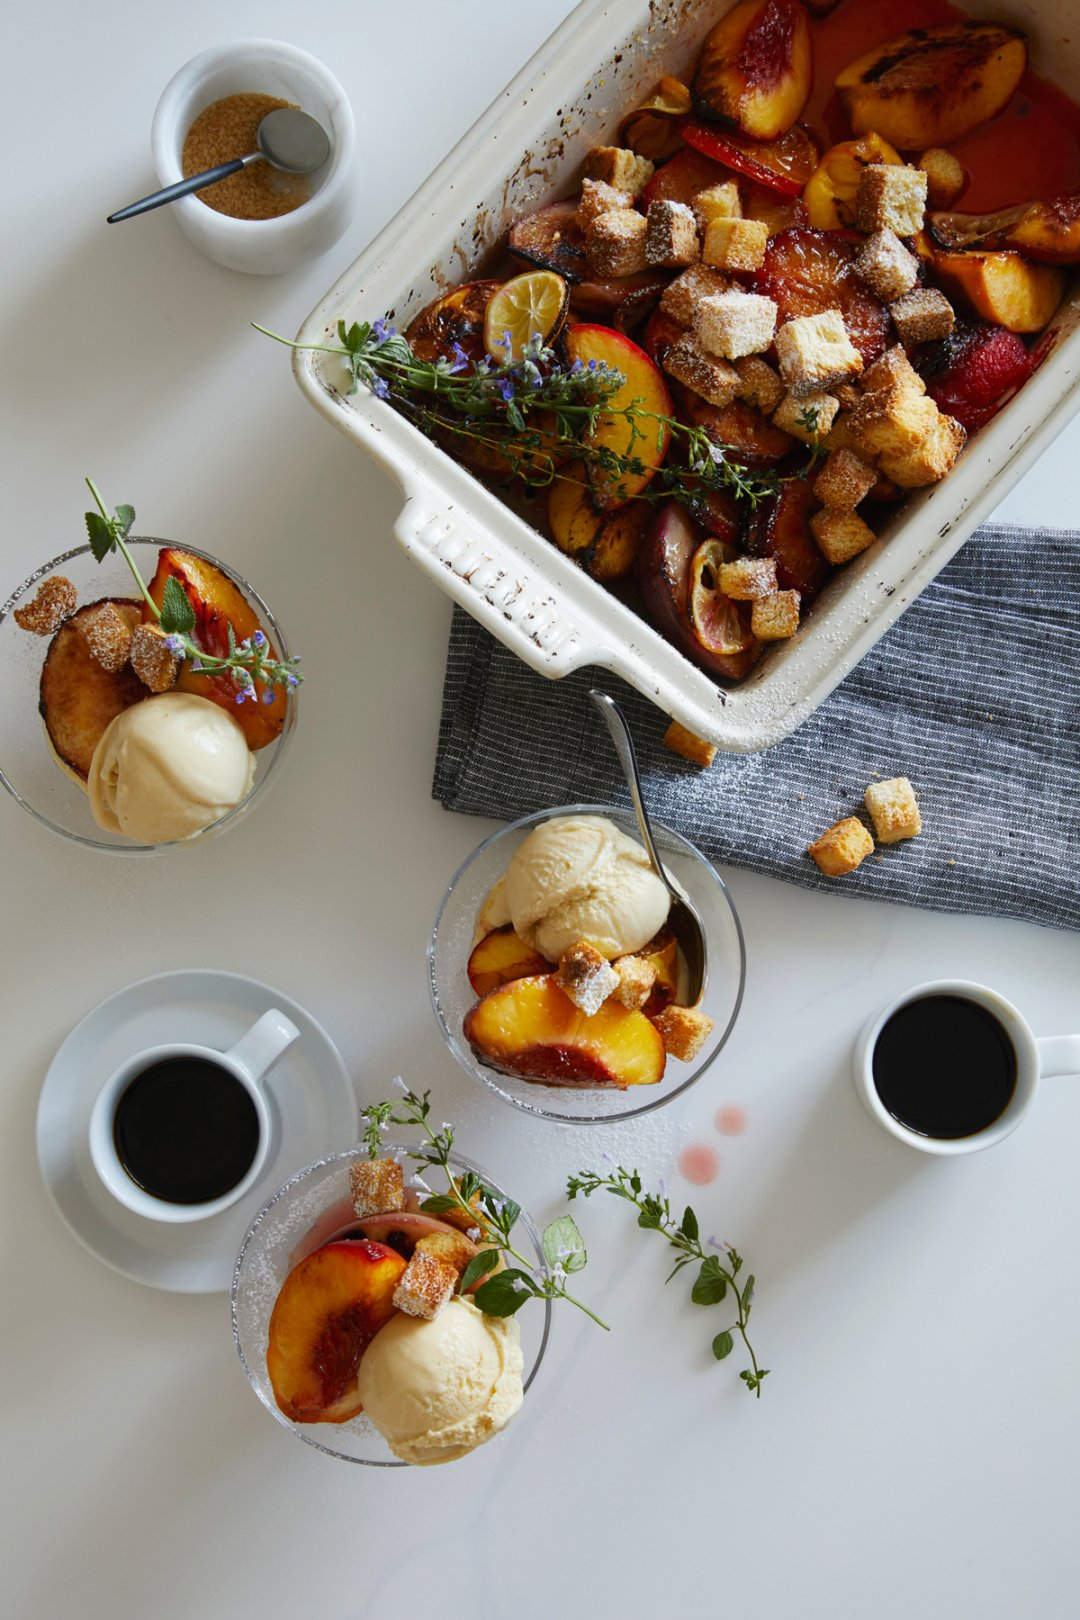 Salted Maple Ice Cream Sundaes with Caramelized Stone Fruit in Le Creuset baker and footed dessert dishes